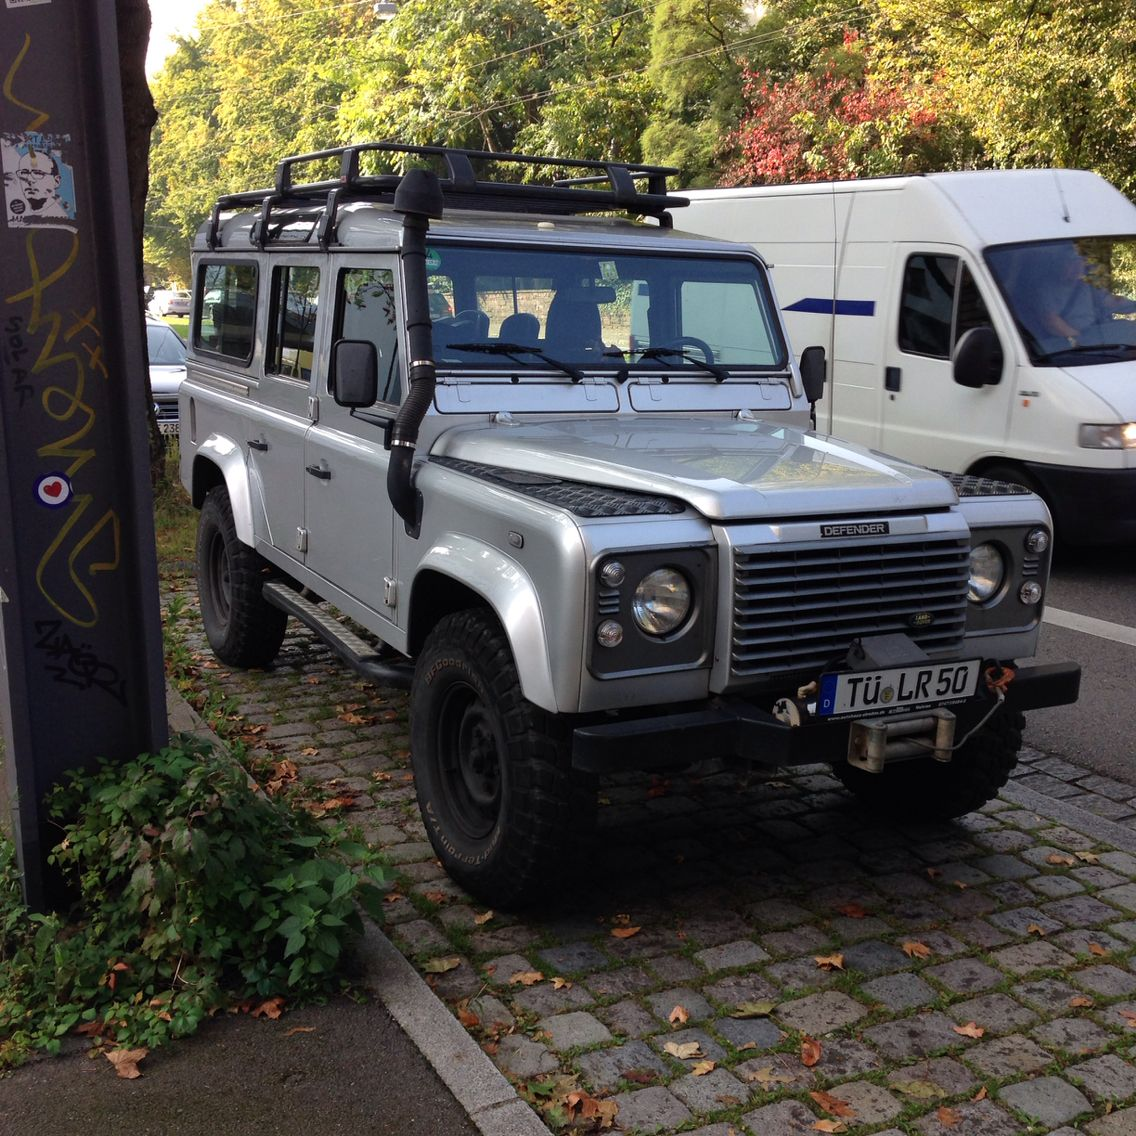 Df 110 Td5 Sw Indus Silver Defender Car Land Rover Land Rover